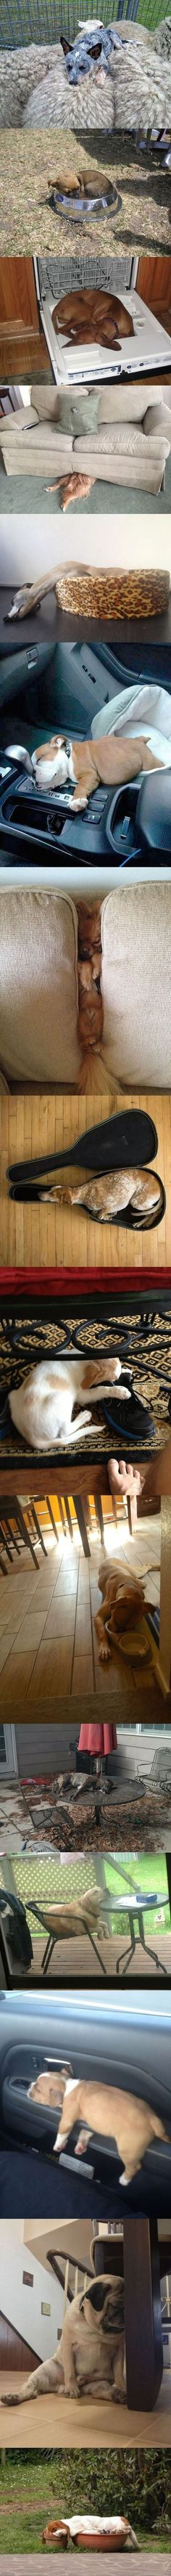 Dogs and their comfortable sleeping places - Süße Tiere - Hund Funny Dog Fails, Funny Dogs, Cute Funny Animals, Funny Animal Pictures, I Love Dogs, Cute Dogs, Animals And Pets, Baby Animals, Animals Beautiful